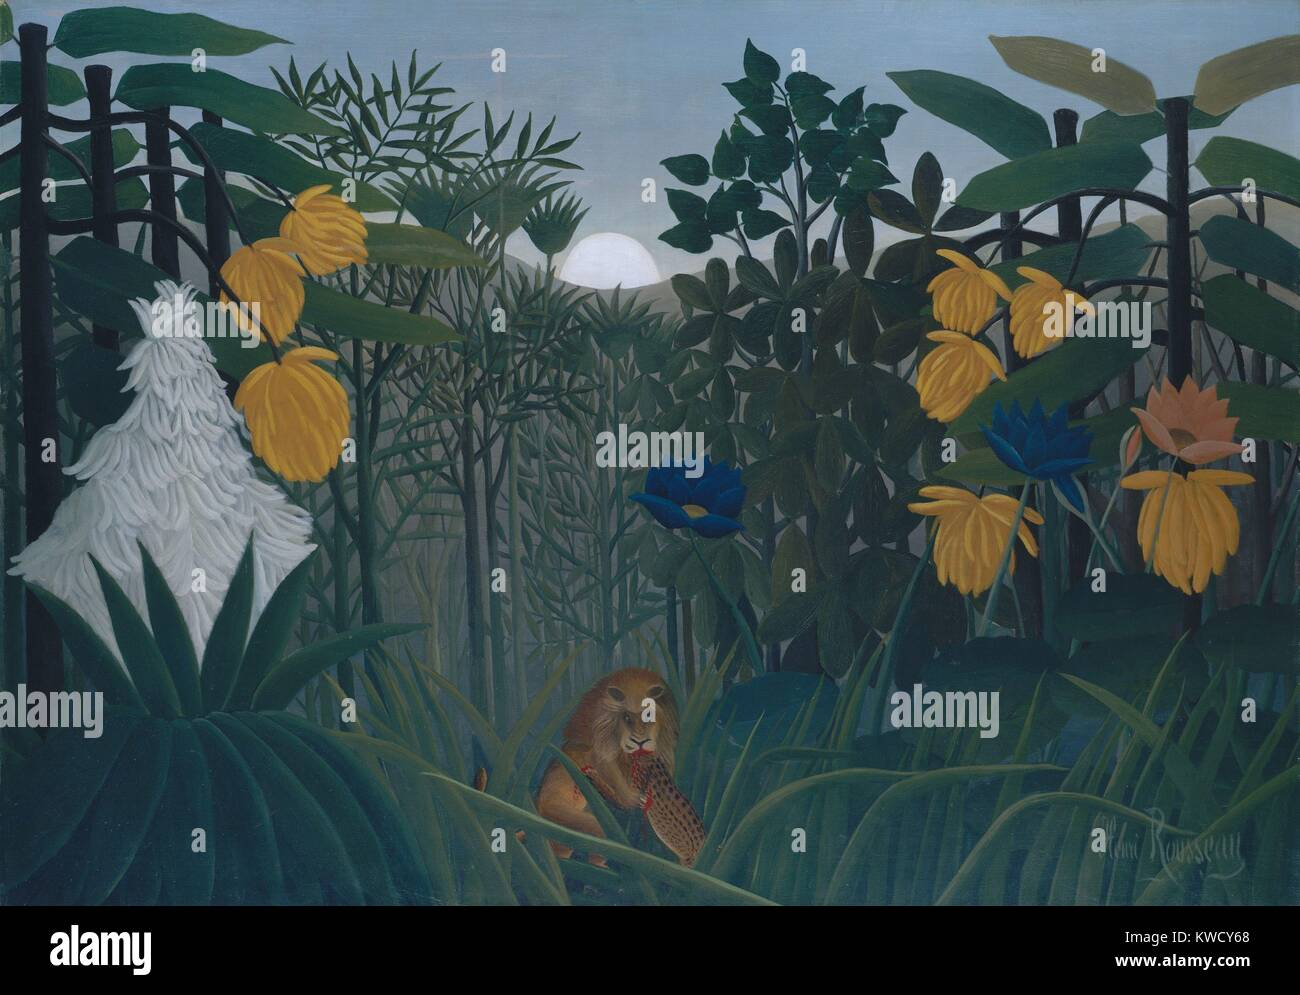 The Repast of the Lion, by Henri Rousseau, 1907, French Primitivism, painting, oil on canvas. The self-taught naive - Stock Image